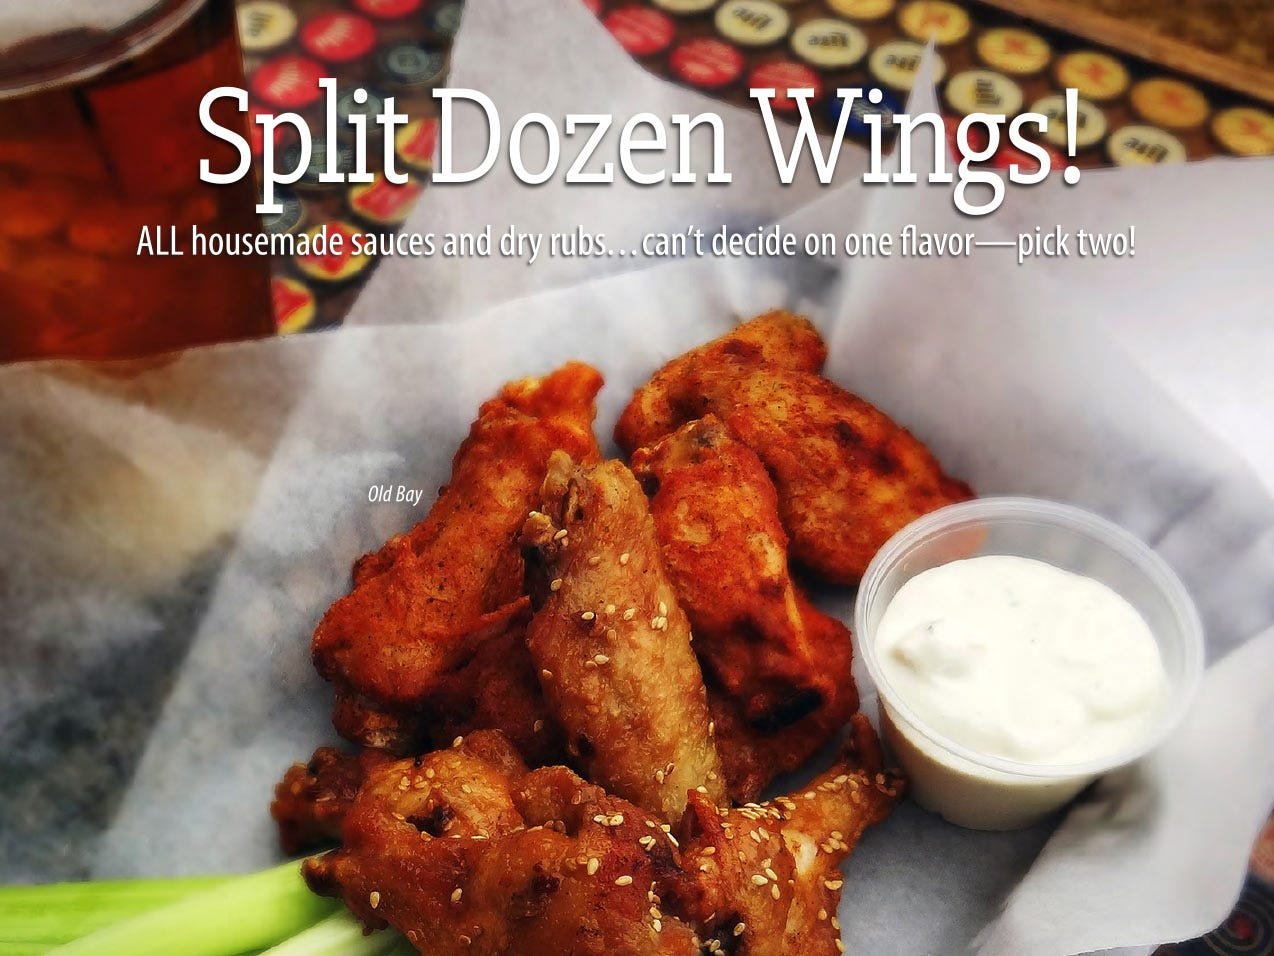 These wings can be found at The Circle located at 5 East Walnut St.